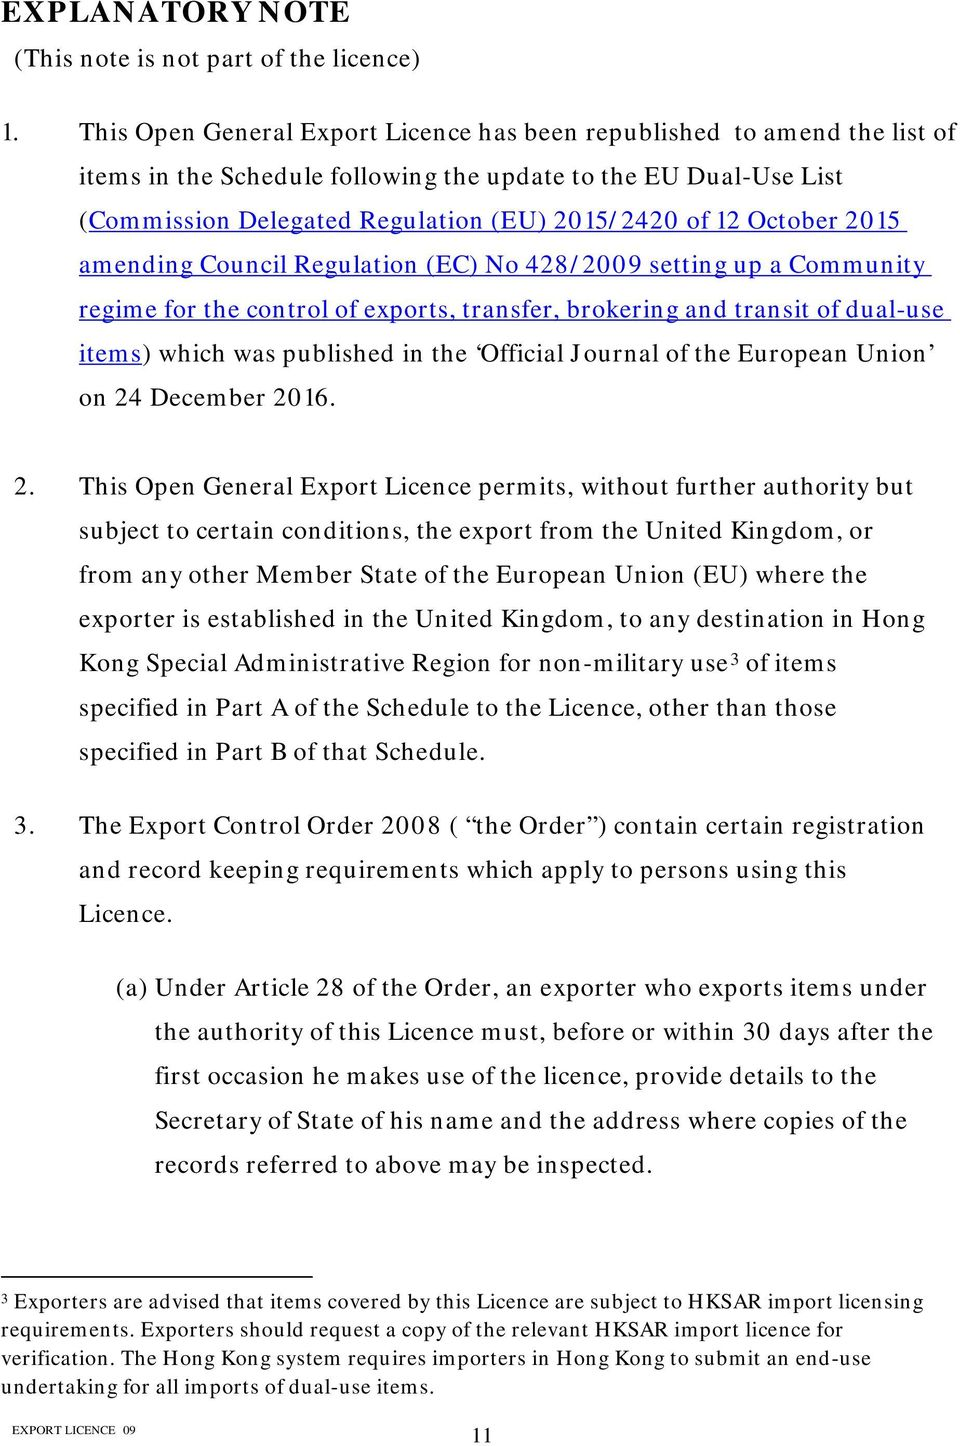 October 2015 amending Council Regulation (EC) No 428/2009 setting up a Community regime for the control of exports, transfer, brokering and transit of dual-use items) which was published in the